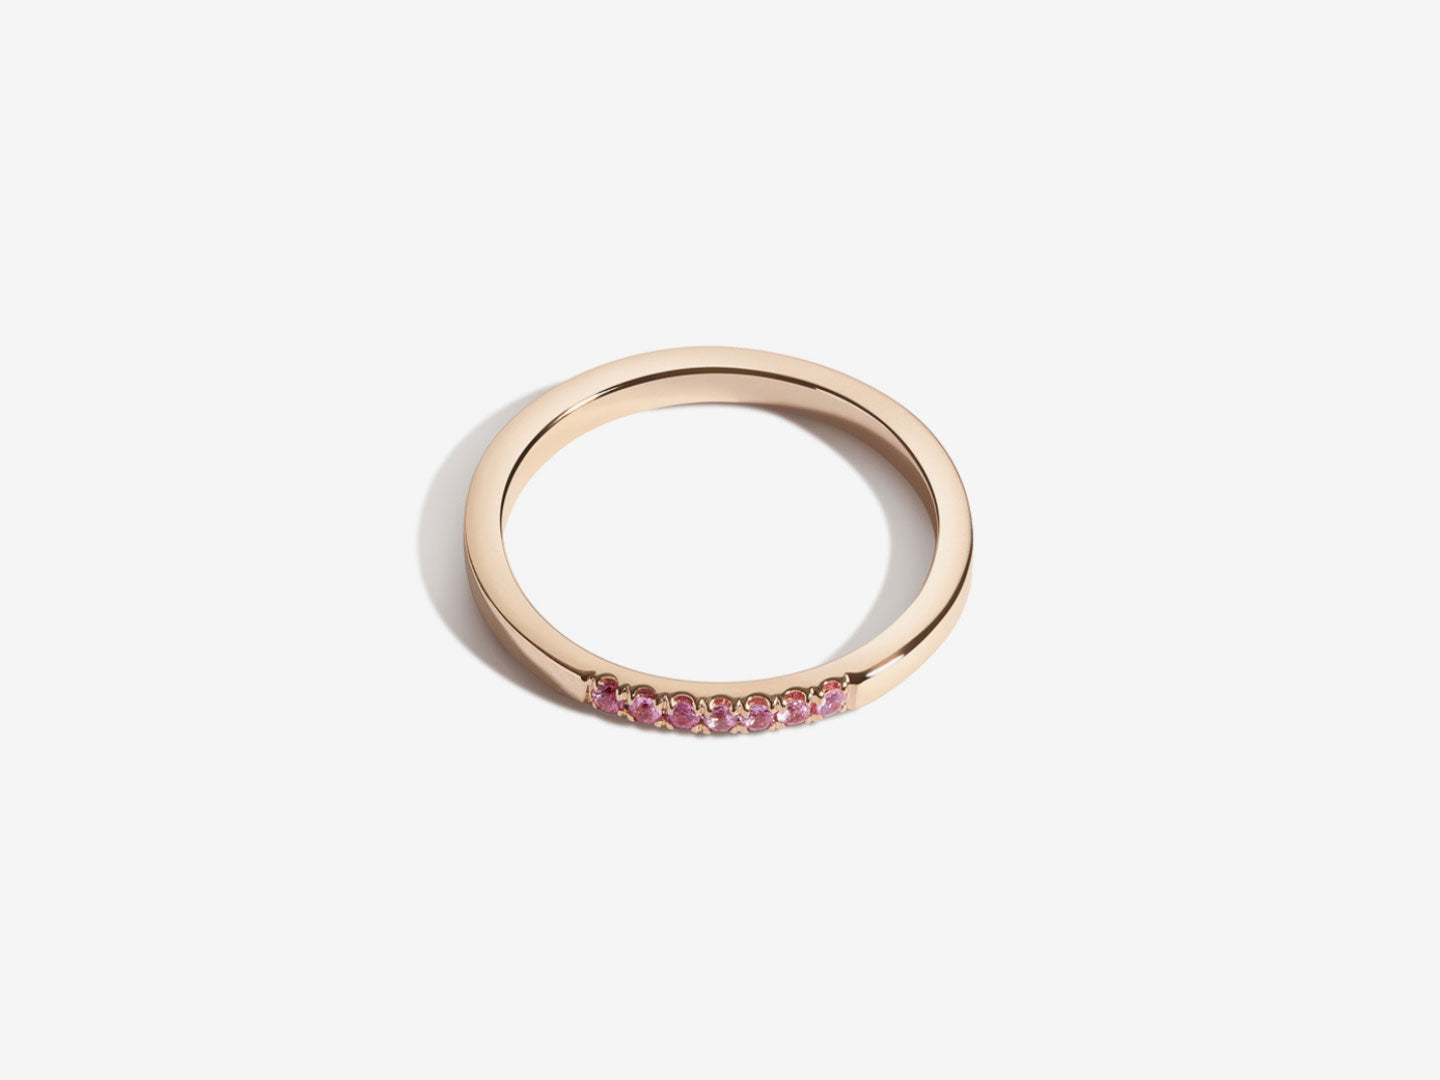 Unisex Baguette Demi Band Ring – pink tourmaline